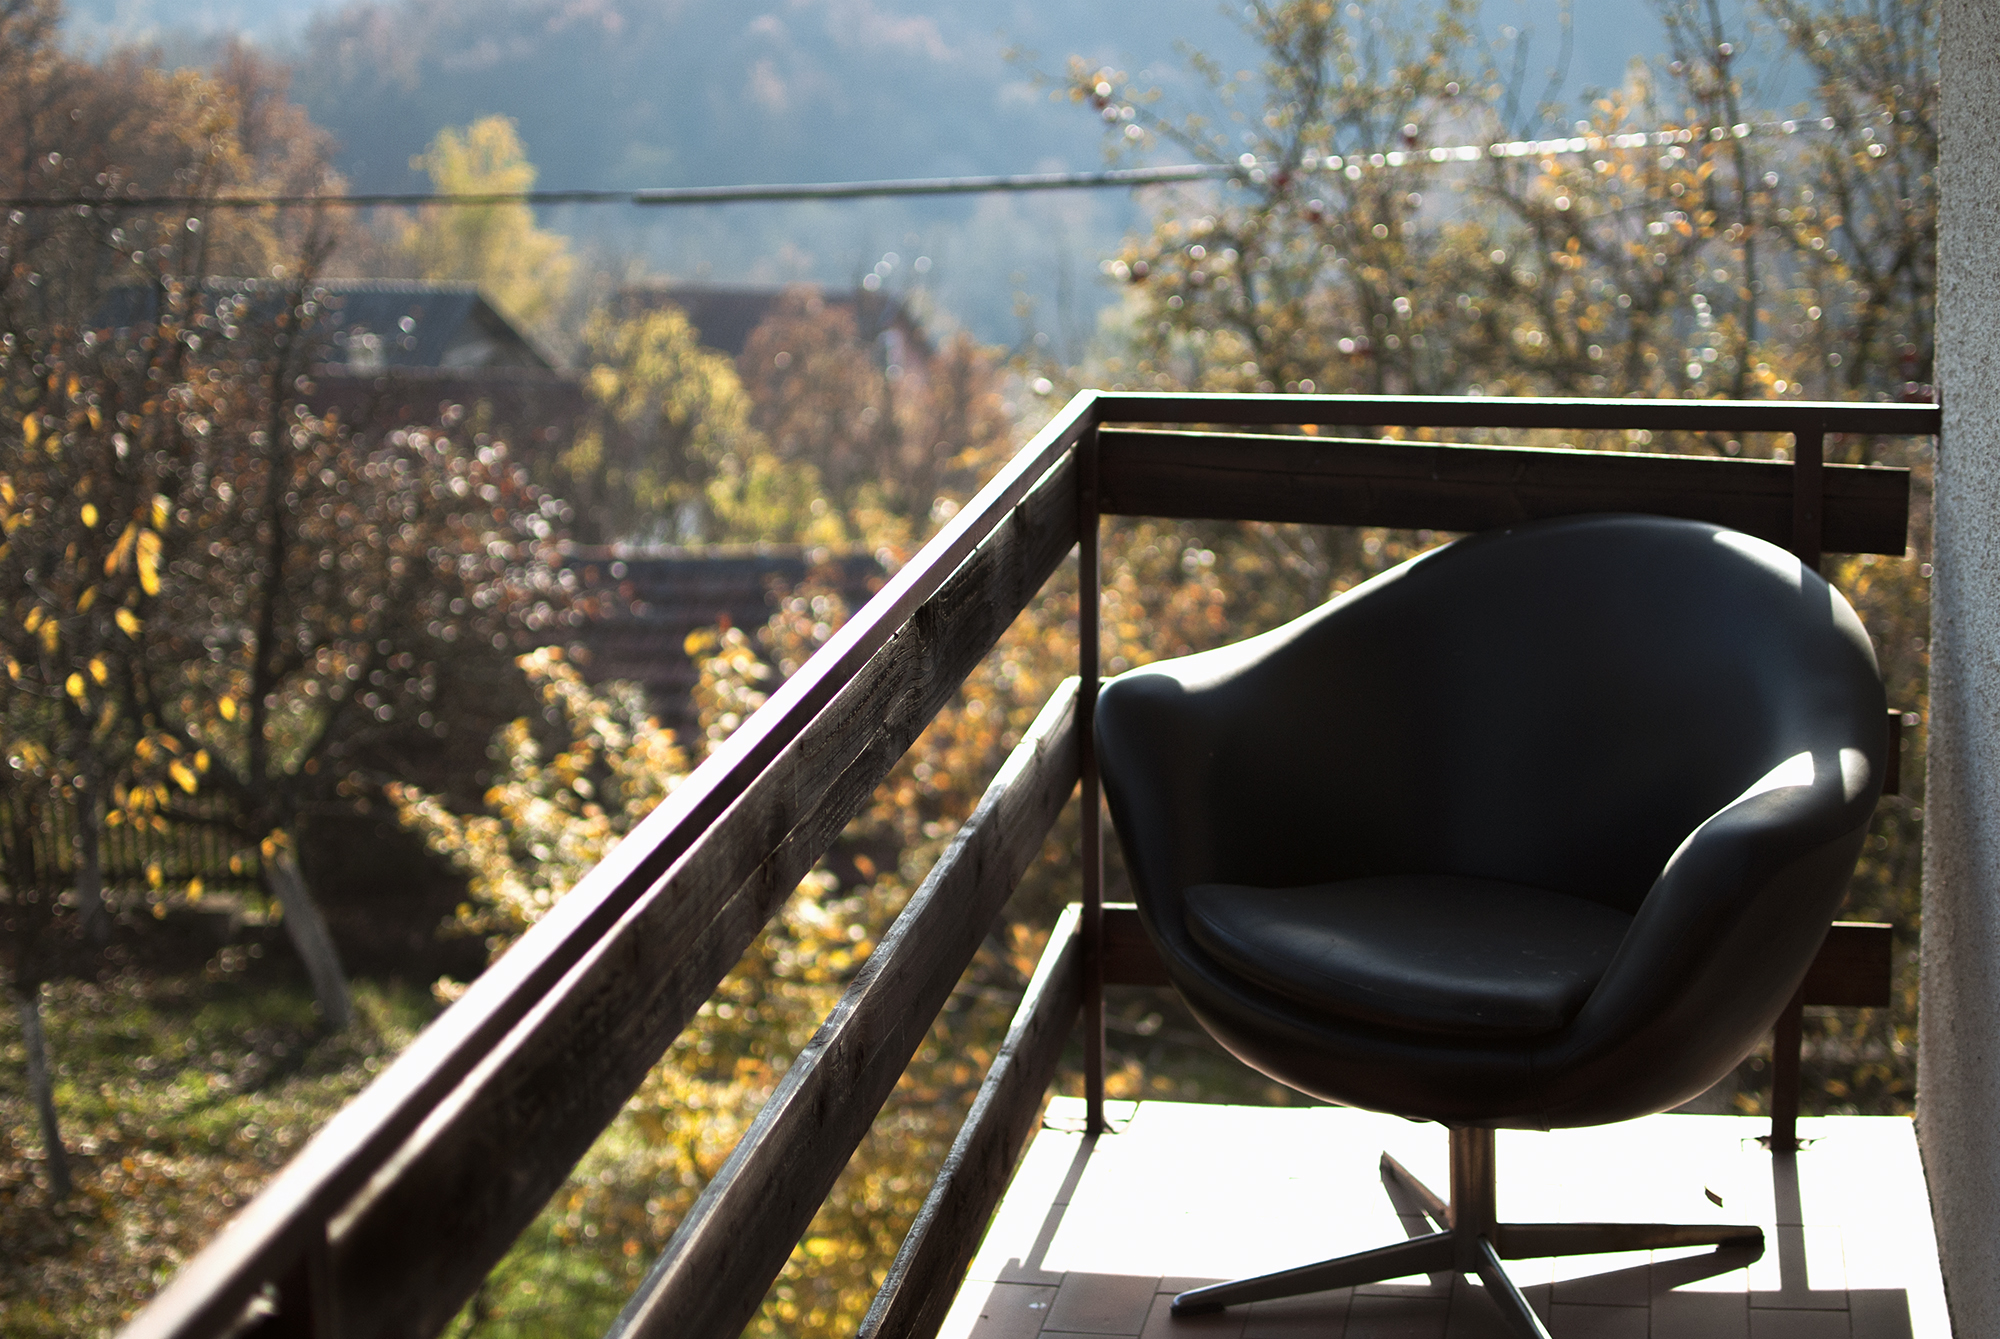 A Chair With a Great View of Autumn - November 2015